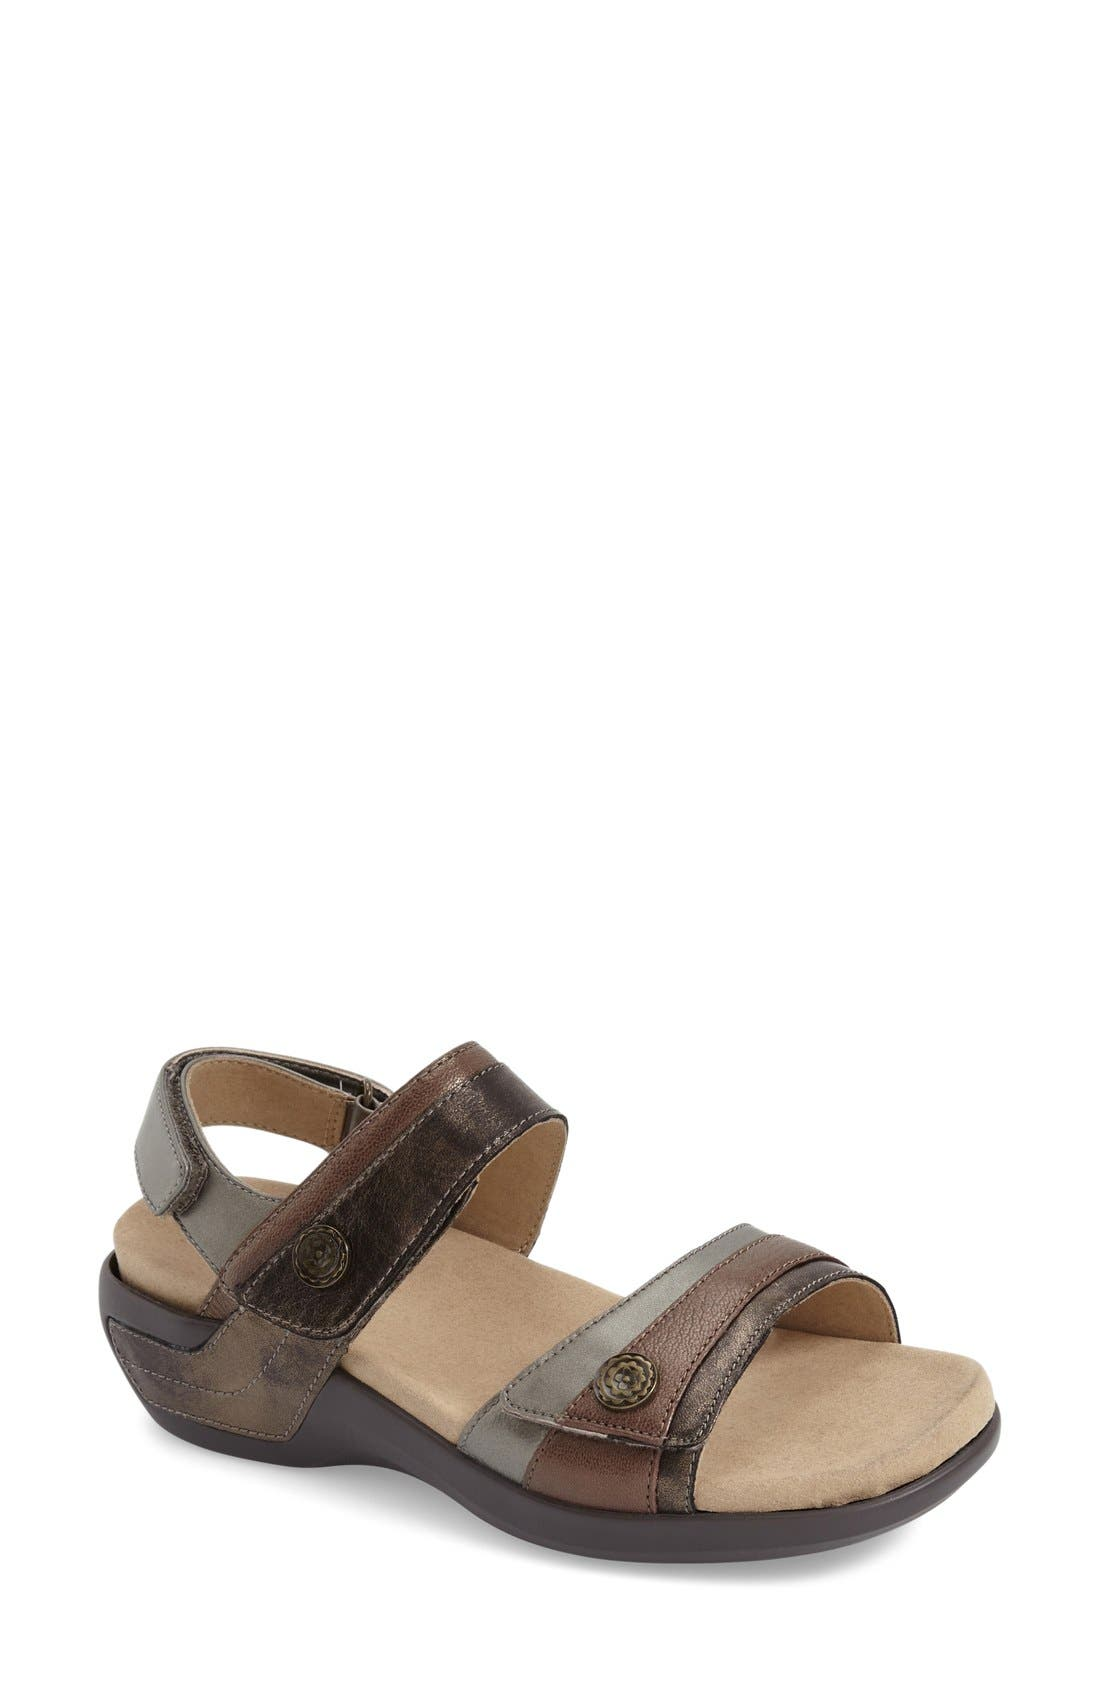 ARAVON, 'Katherine' Sandal, Main thumbnail 1, color, GREY LEATHER